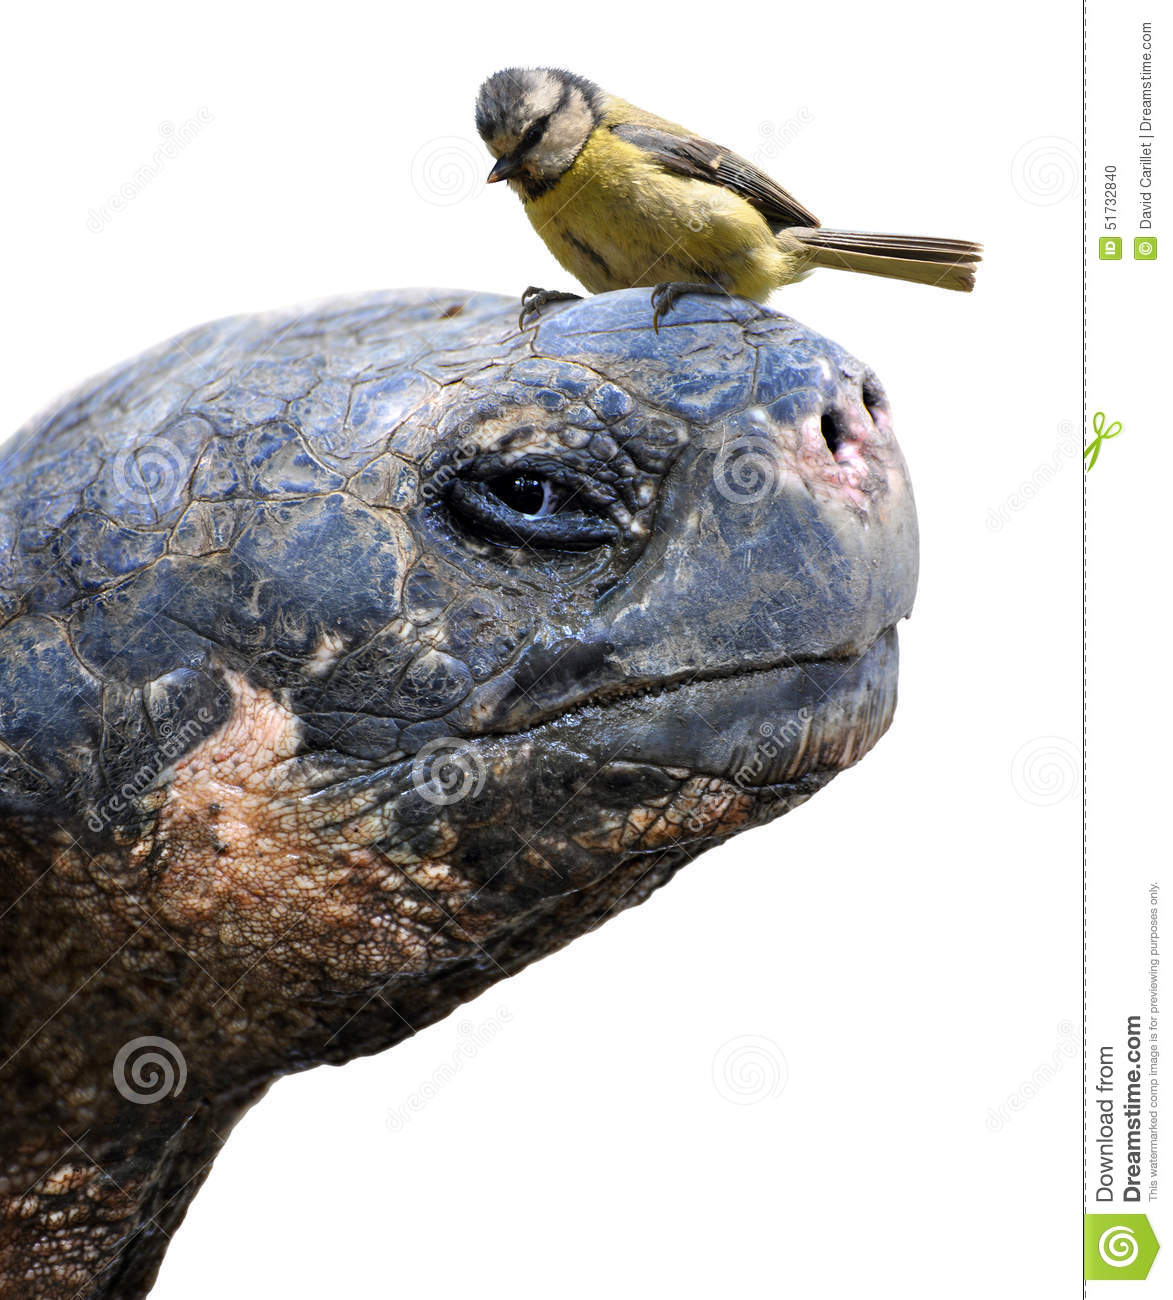 Animal friends, a giant Galapagos tortoise and a small bird, the Eurasian blue tit